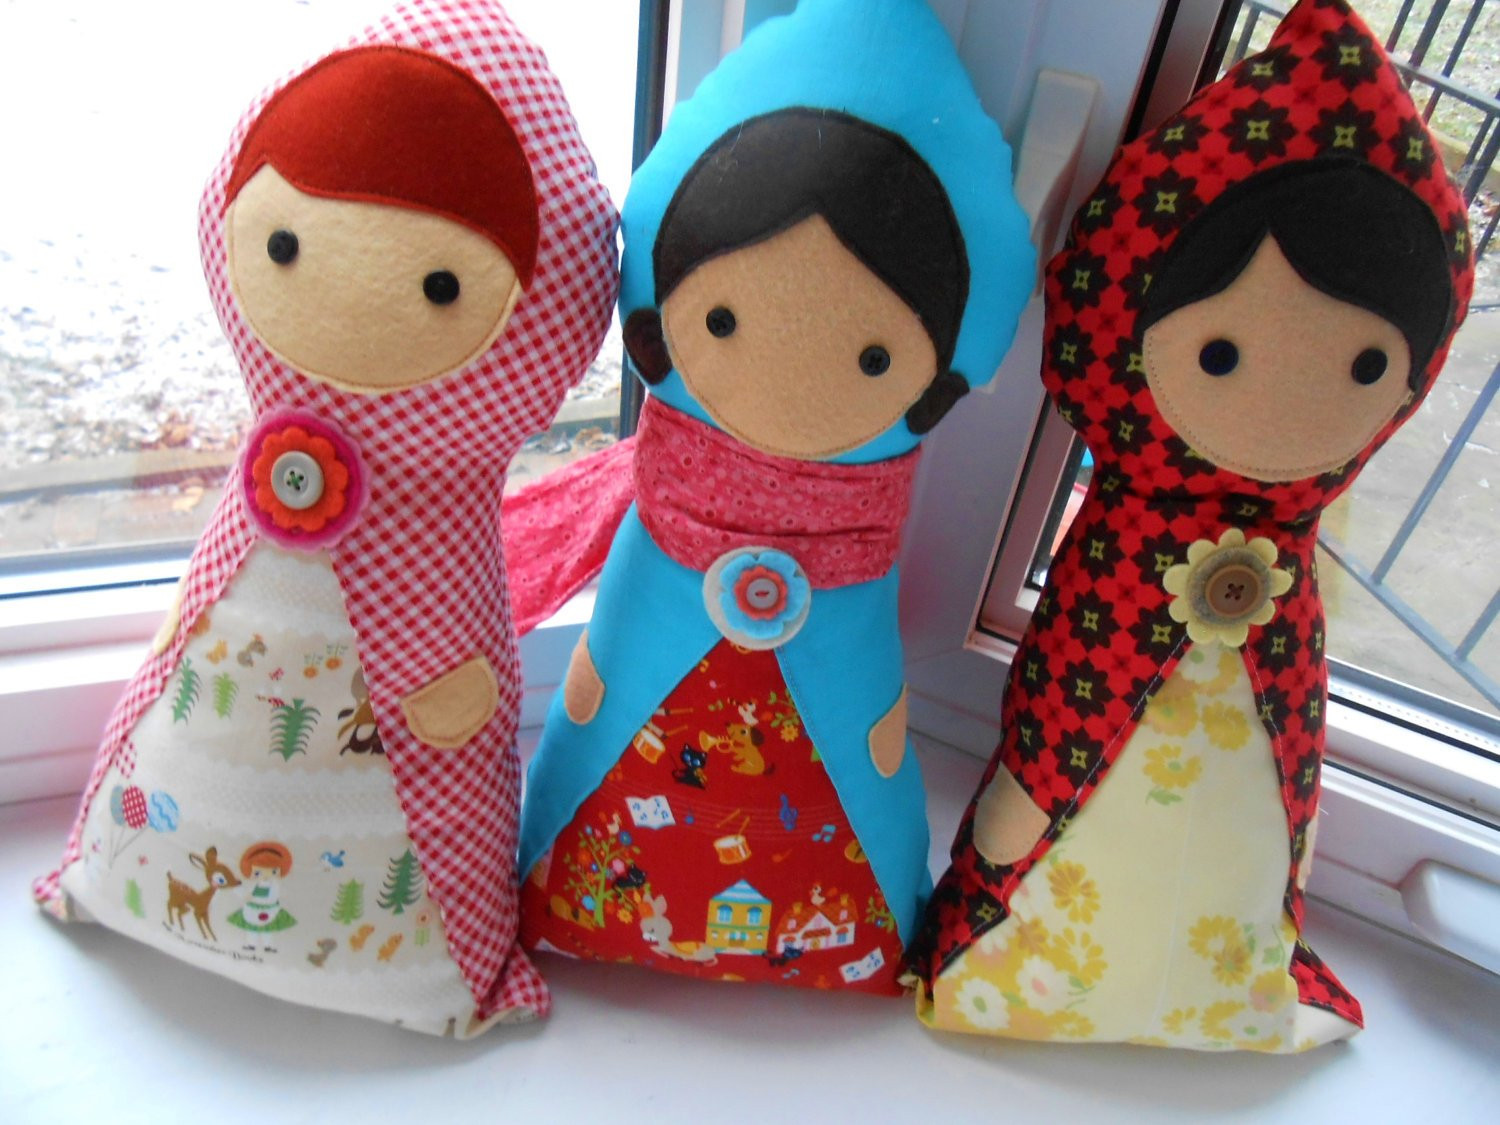 Doll Patterns Inspirational Little Traveller Doll Pdf Sewing Pattern Rag Doll Of Doll Patterns Best Of Gingermelon Dolls My Felt Doll Knitted Outfit Patterns